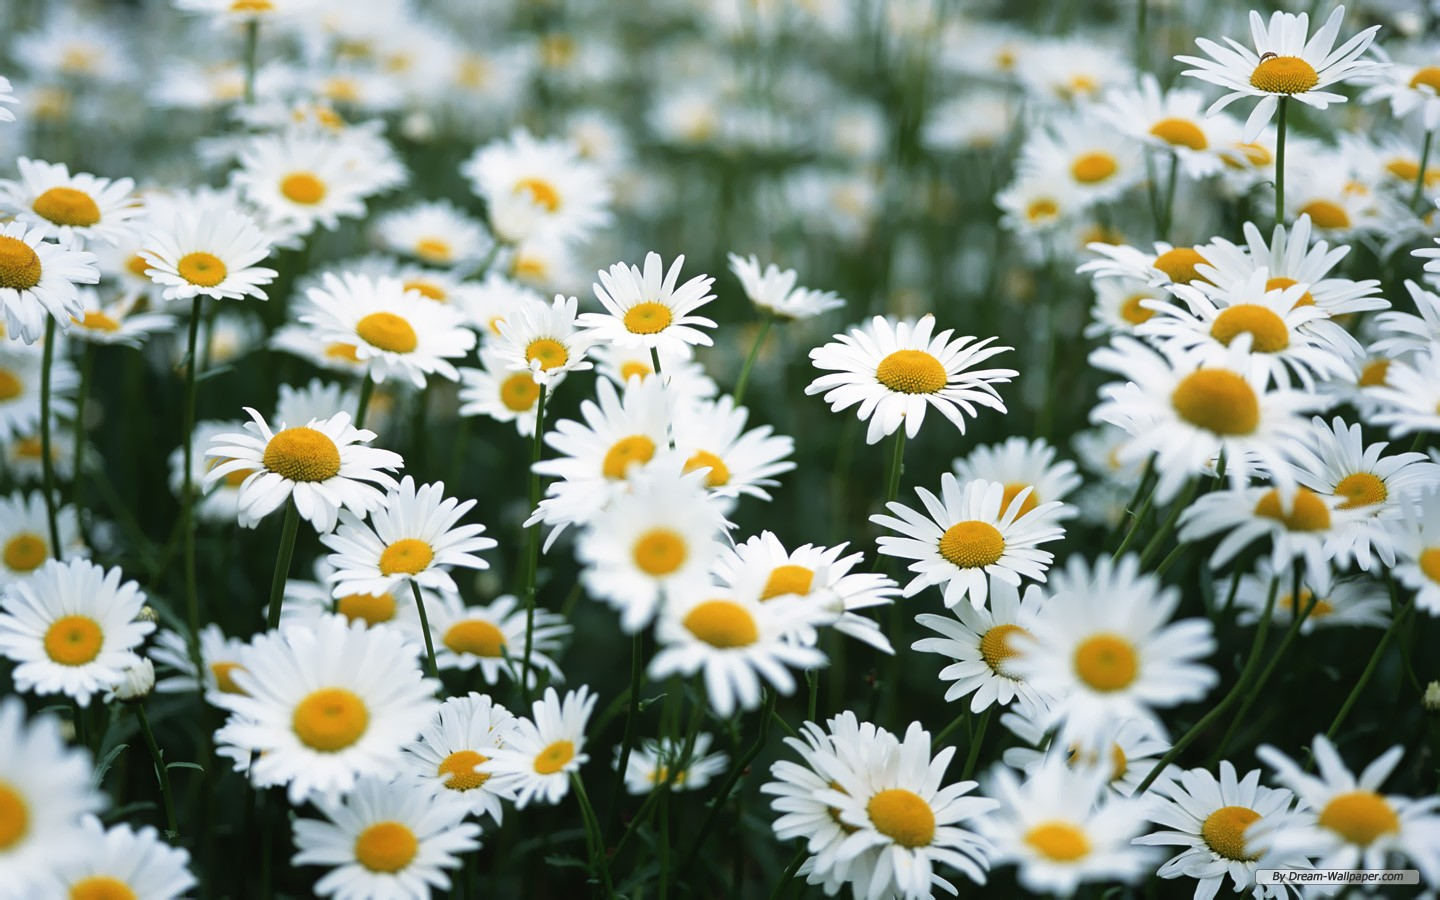 Daisy Wallpaper: Outstanding White Daisy Wallpaper 1440x900px